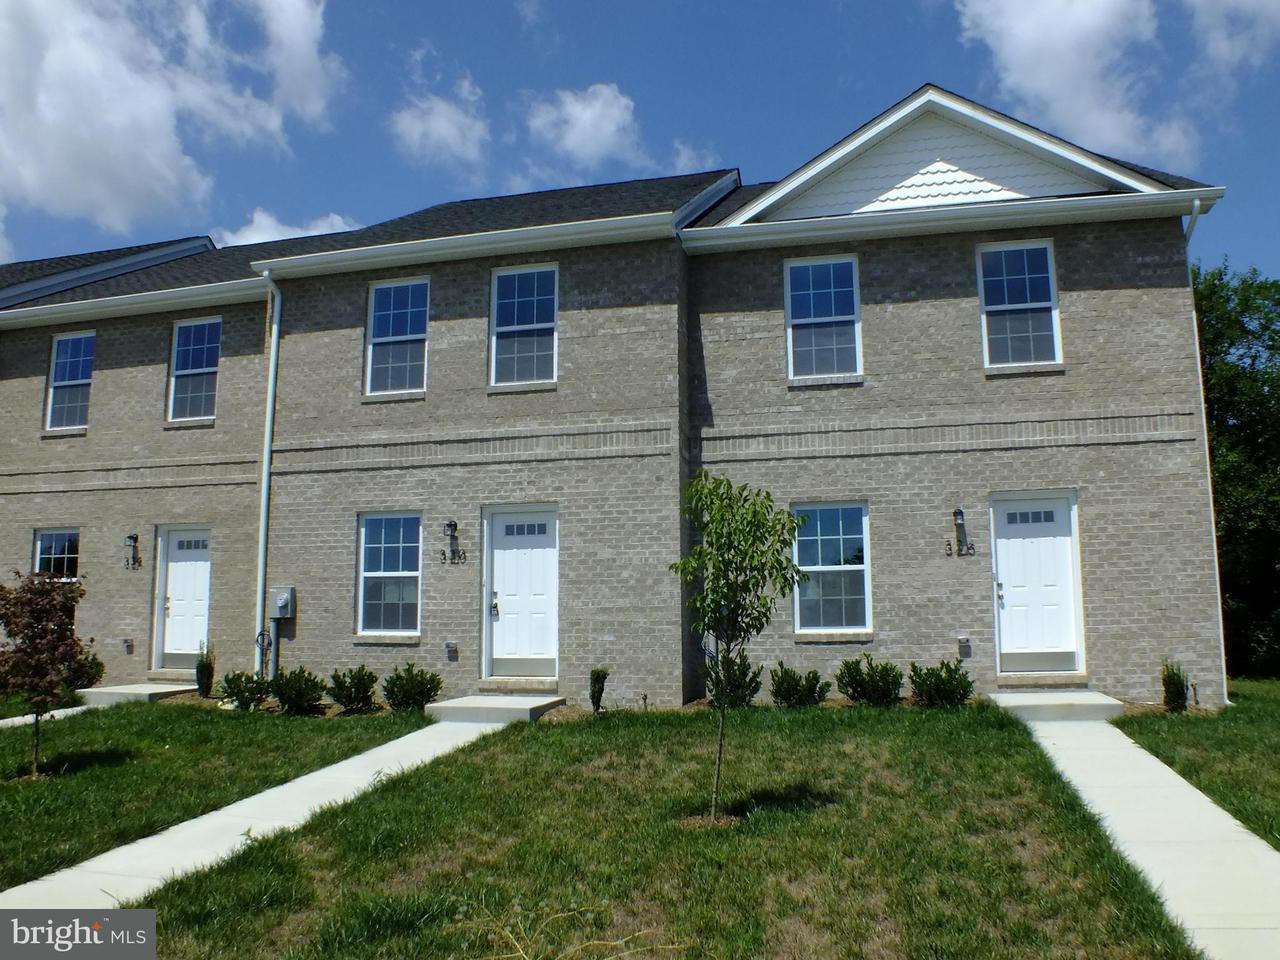 Other Residential for Rent at 141 Disciple Ln Inwood, West Virginia 25428 United States